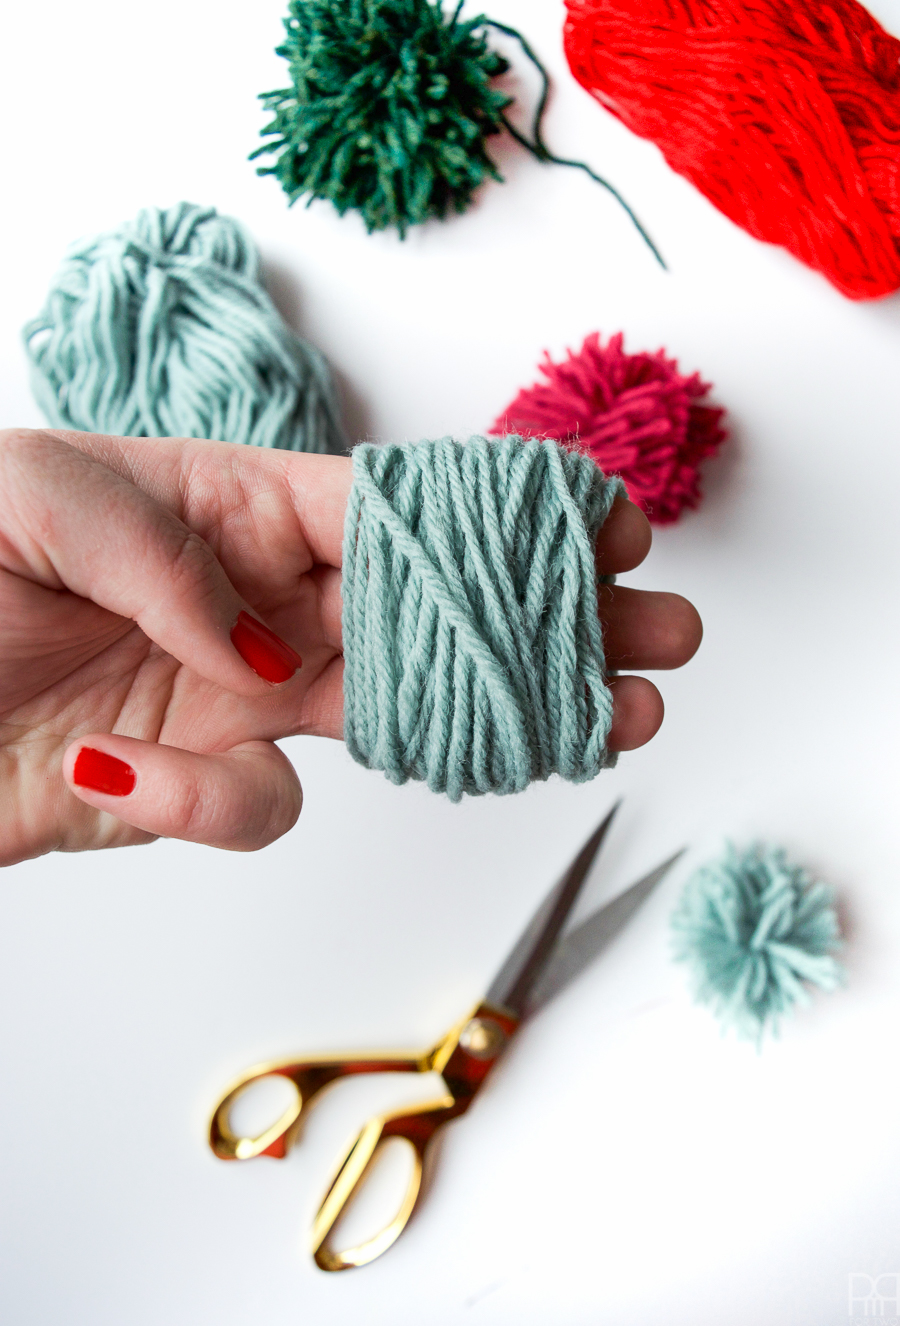 diy-pom-poms-and-tassels-19